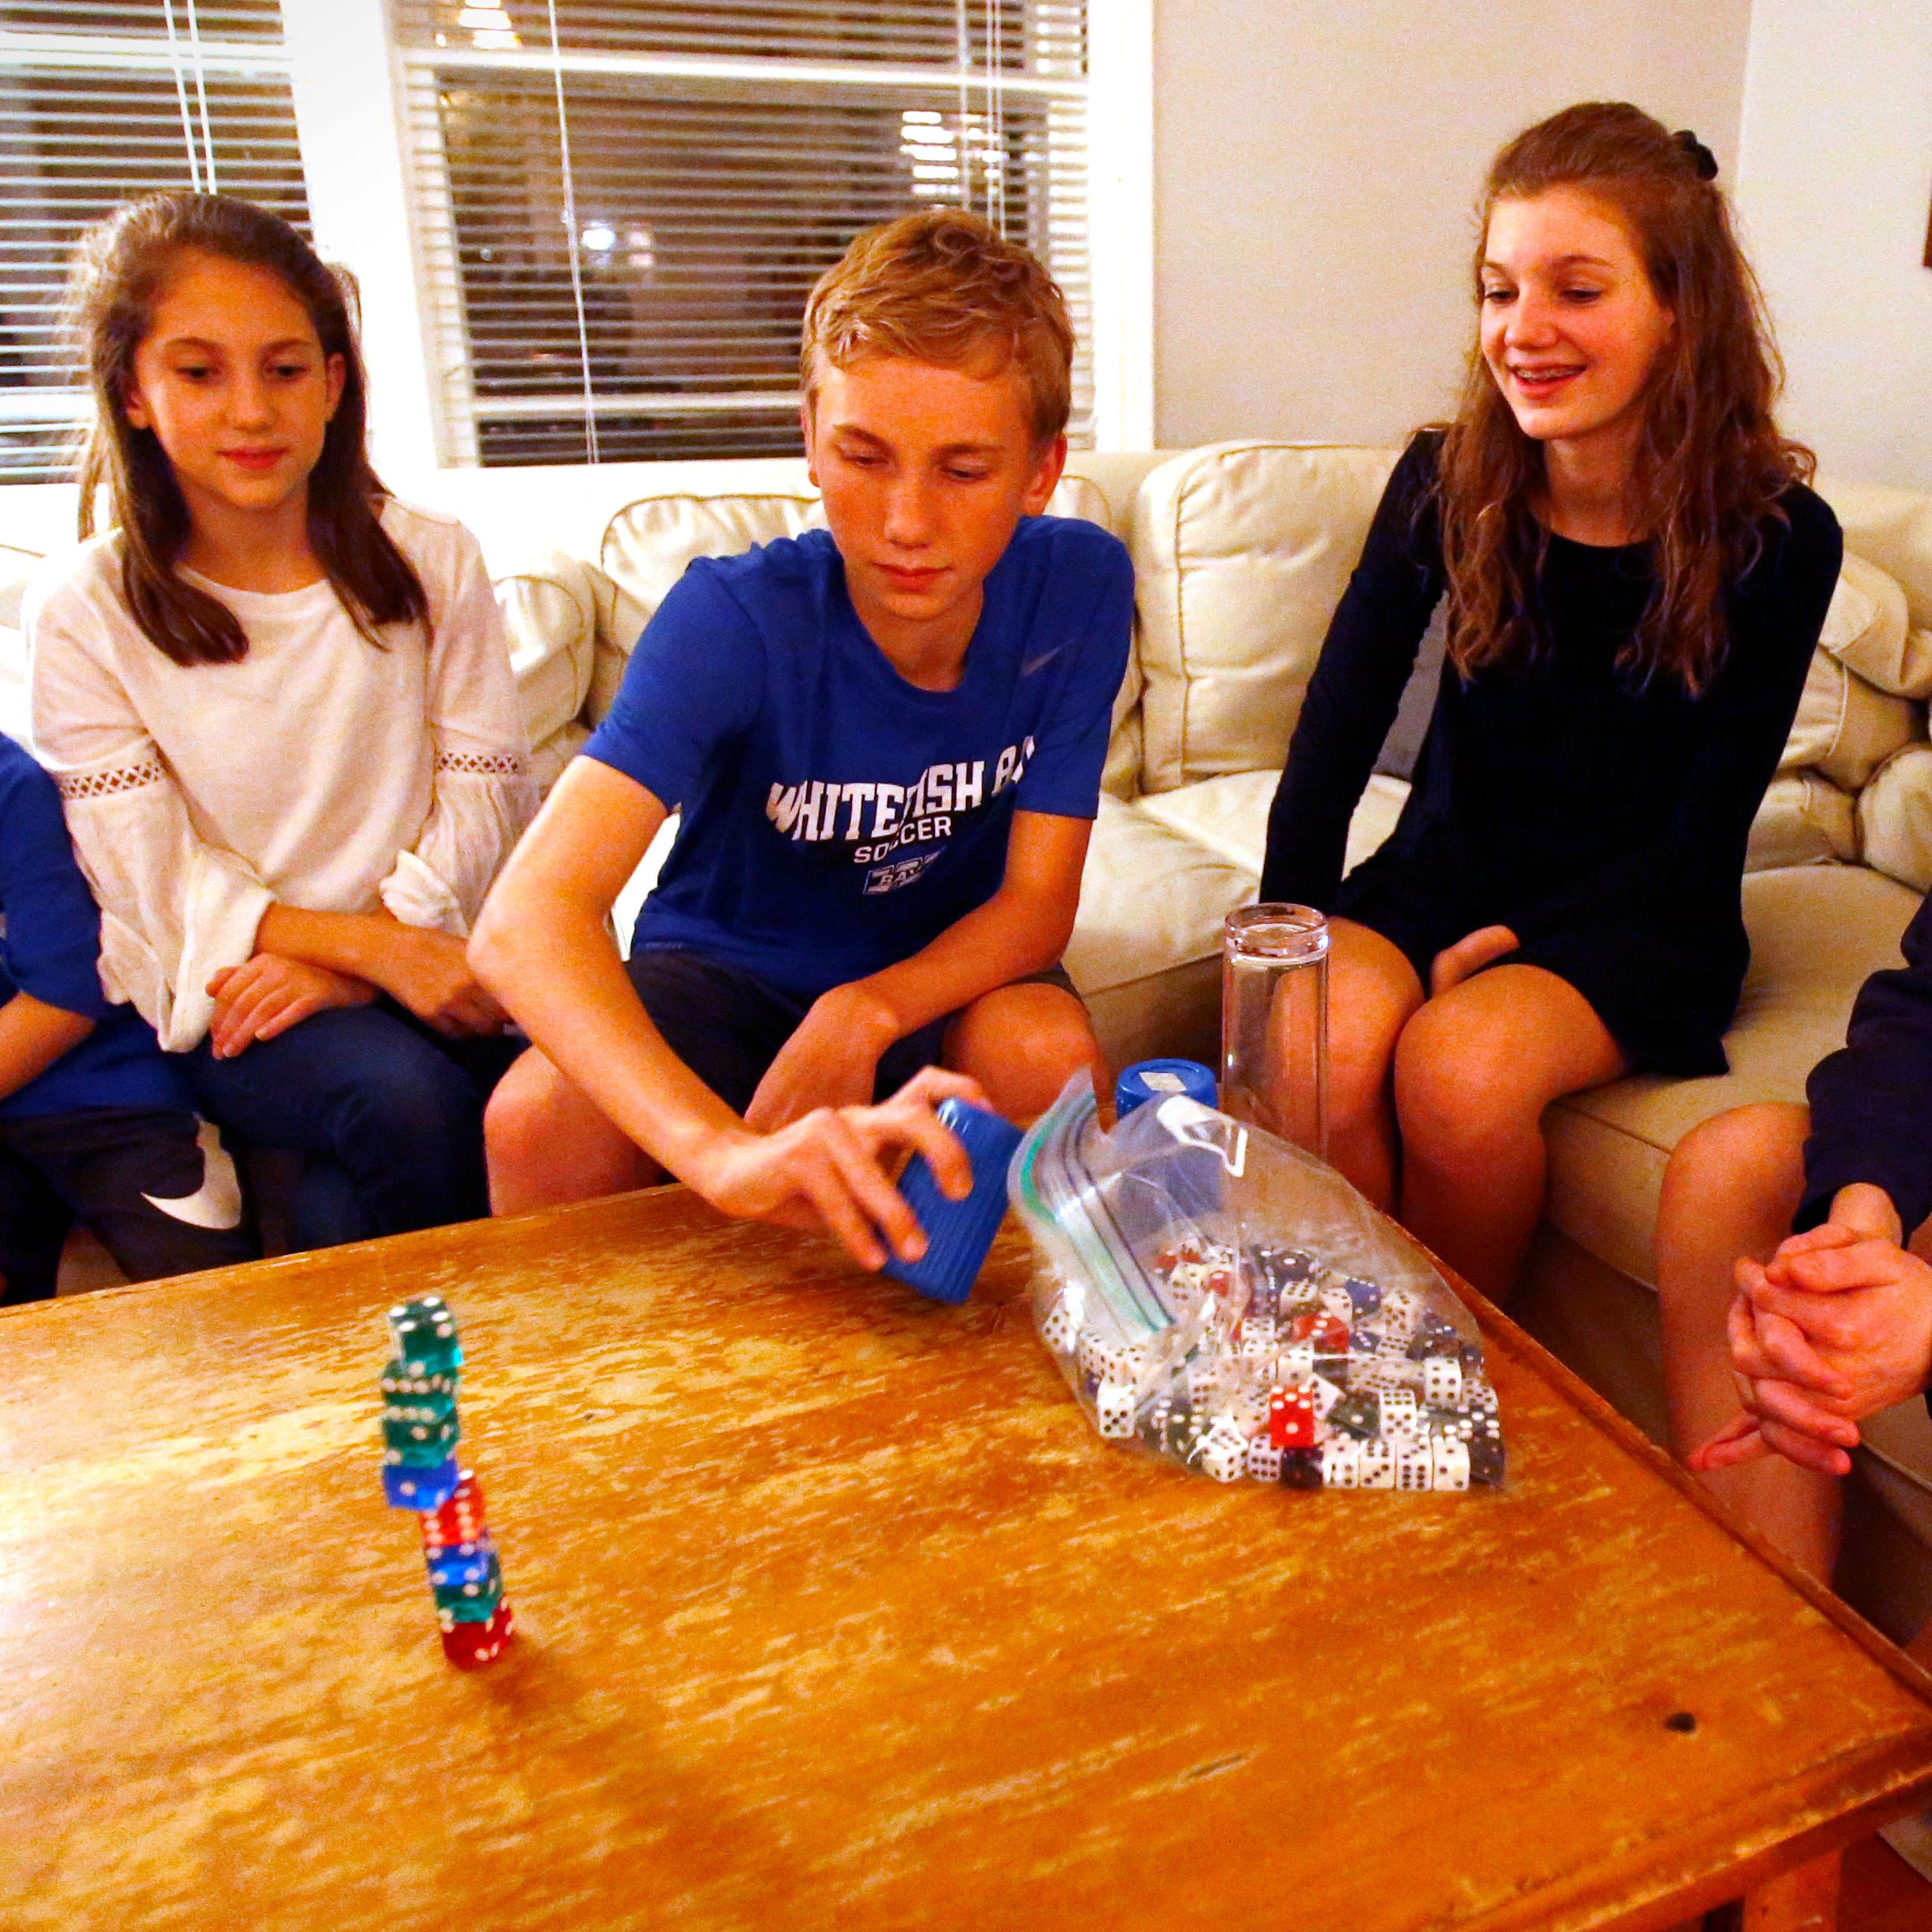 These Whitefish Bay kids have almost 1 million subscribers on YouTube. Here's how they did it.